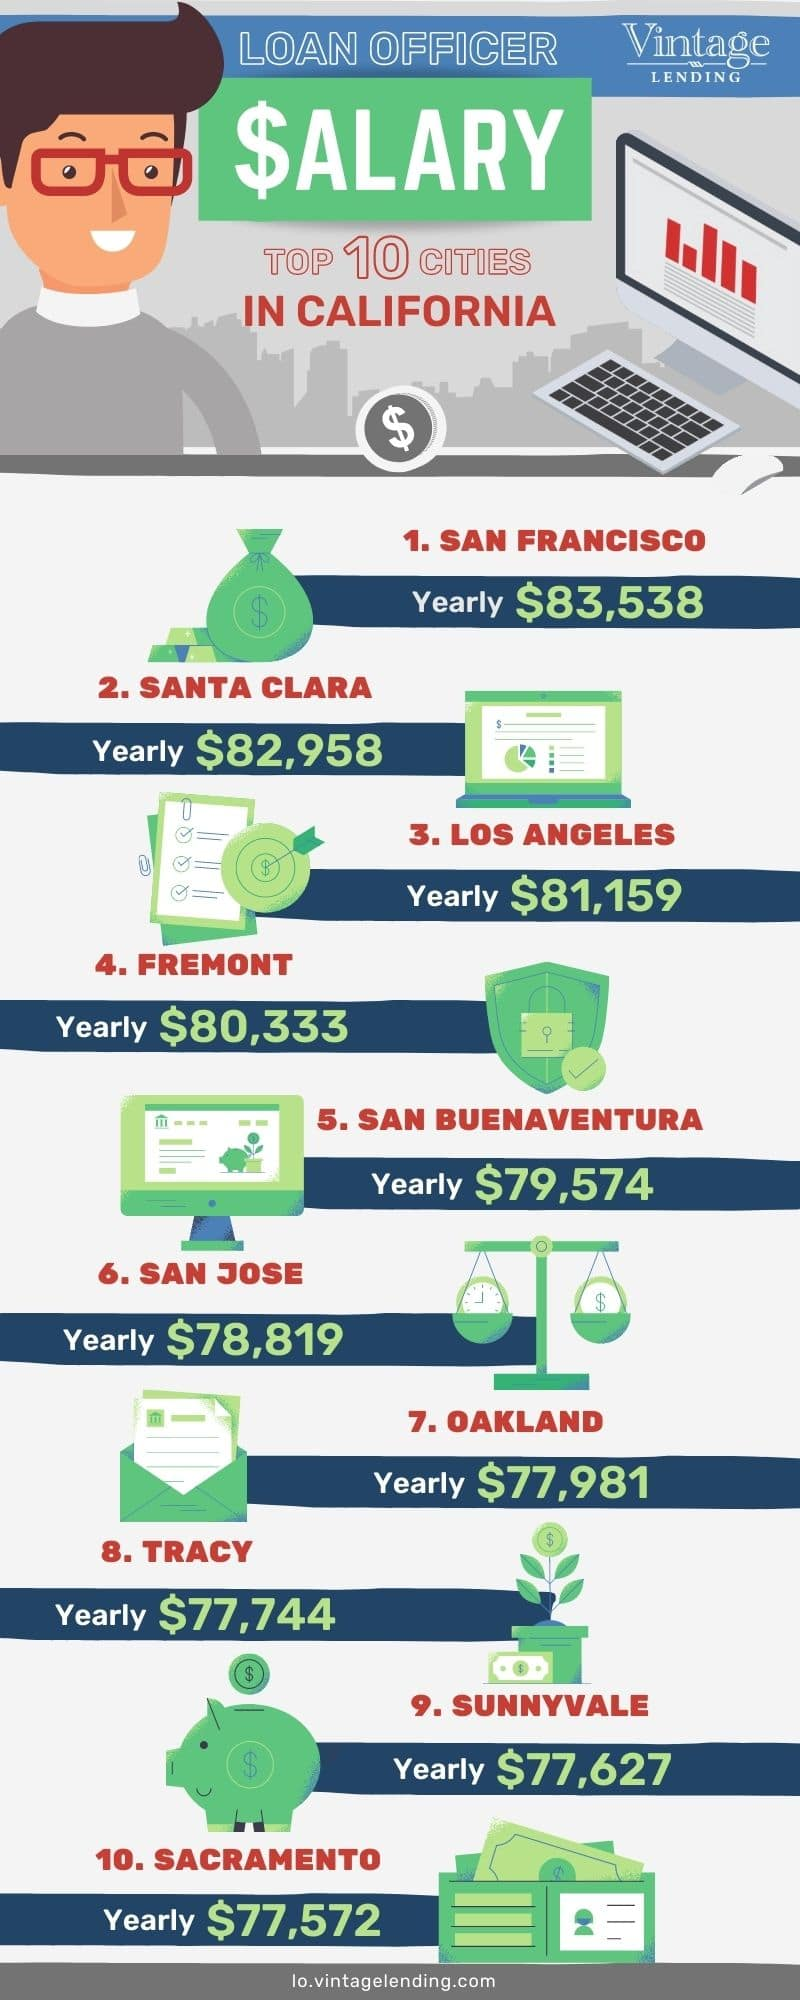 Mortgage Loan Officer Salary California Infographic